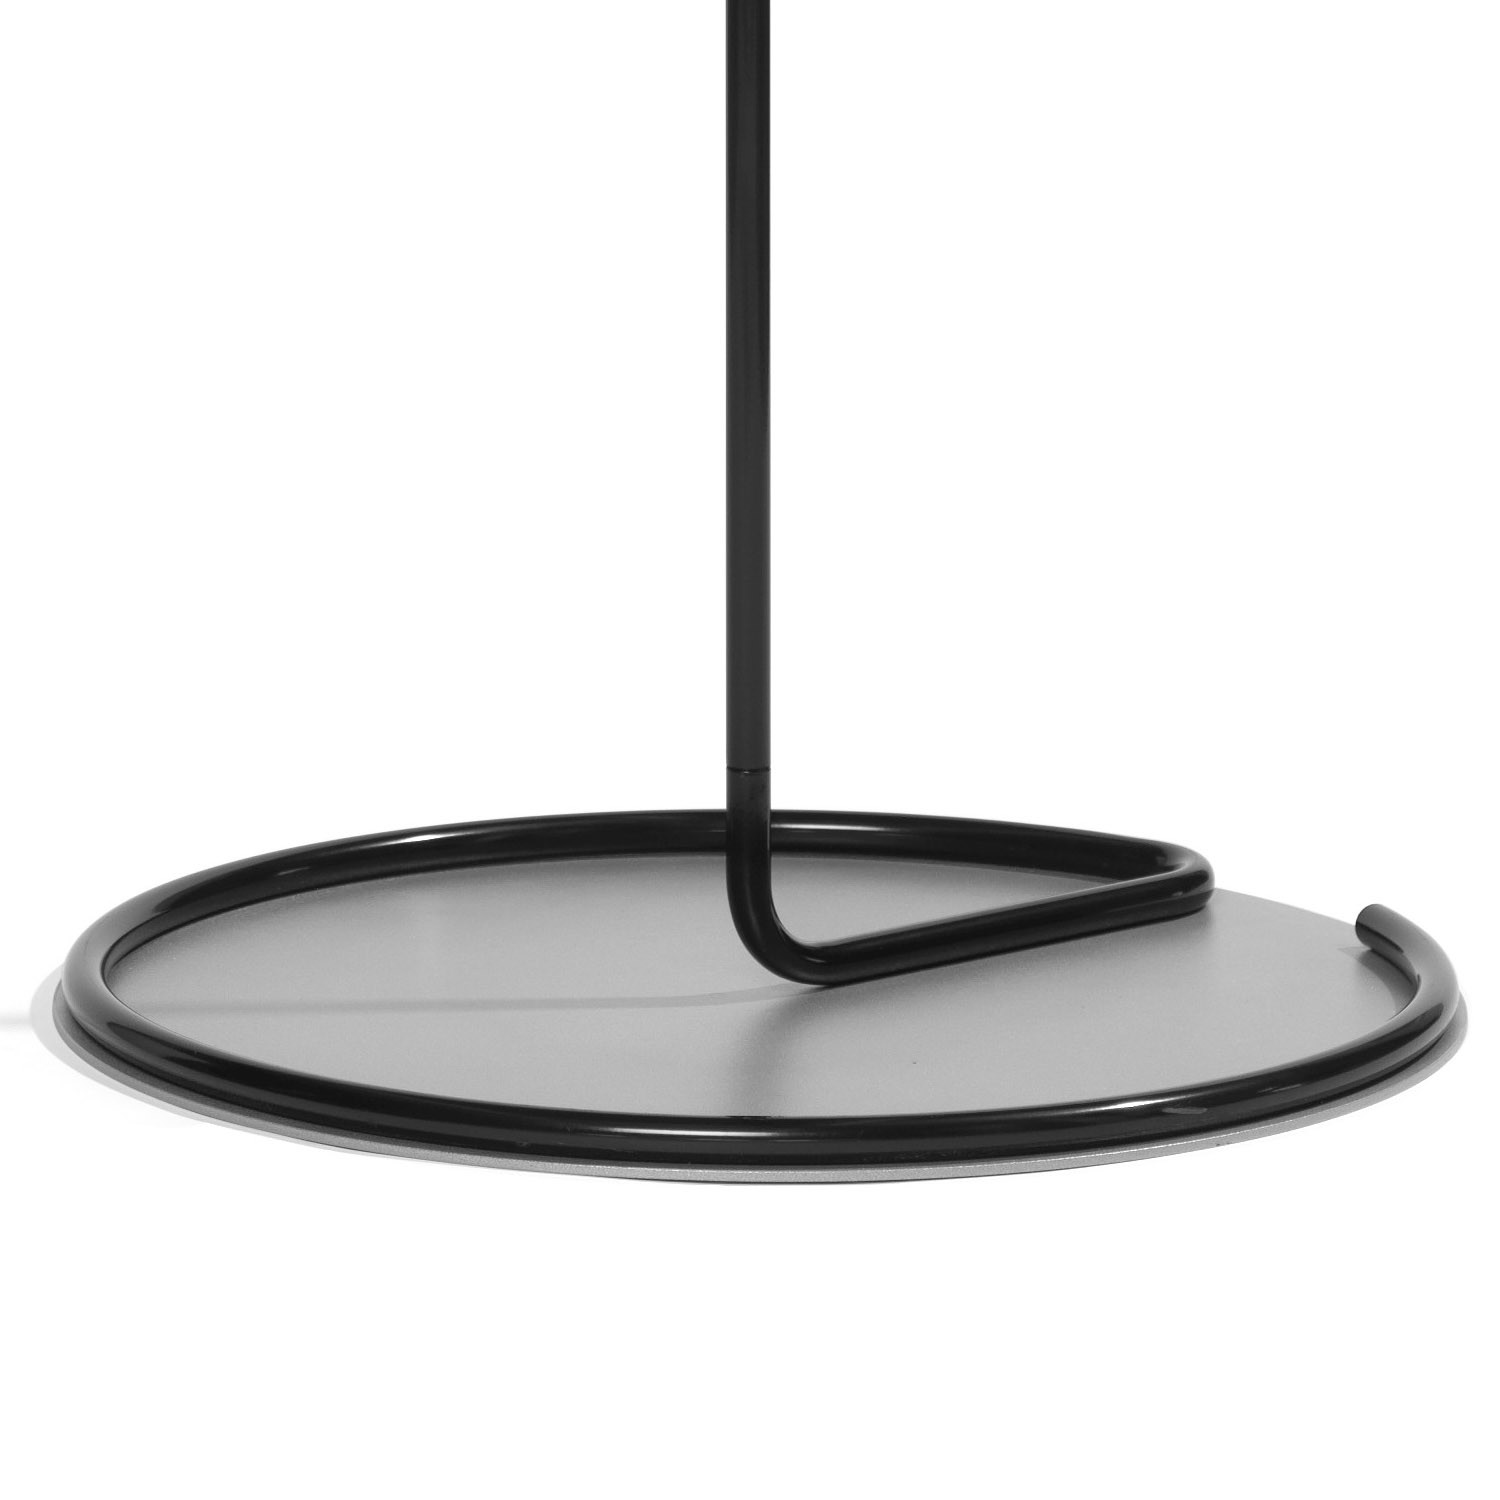 Visp Coat Stand A30 by Bla Station